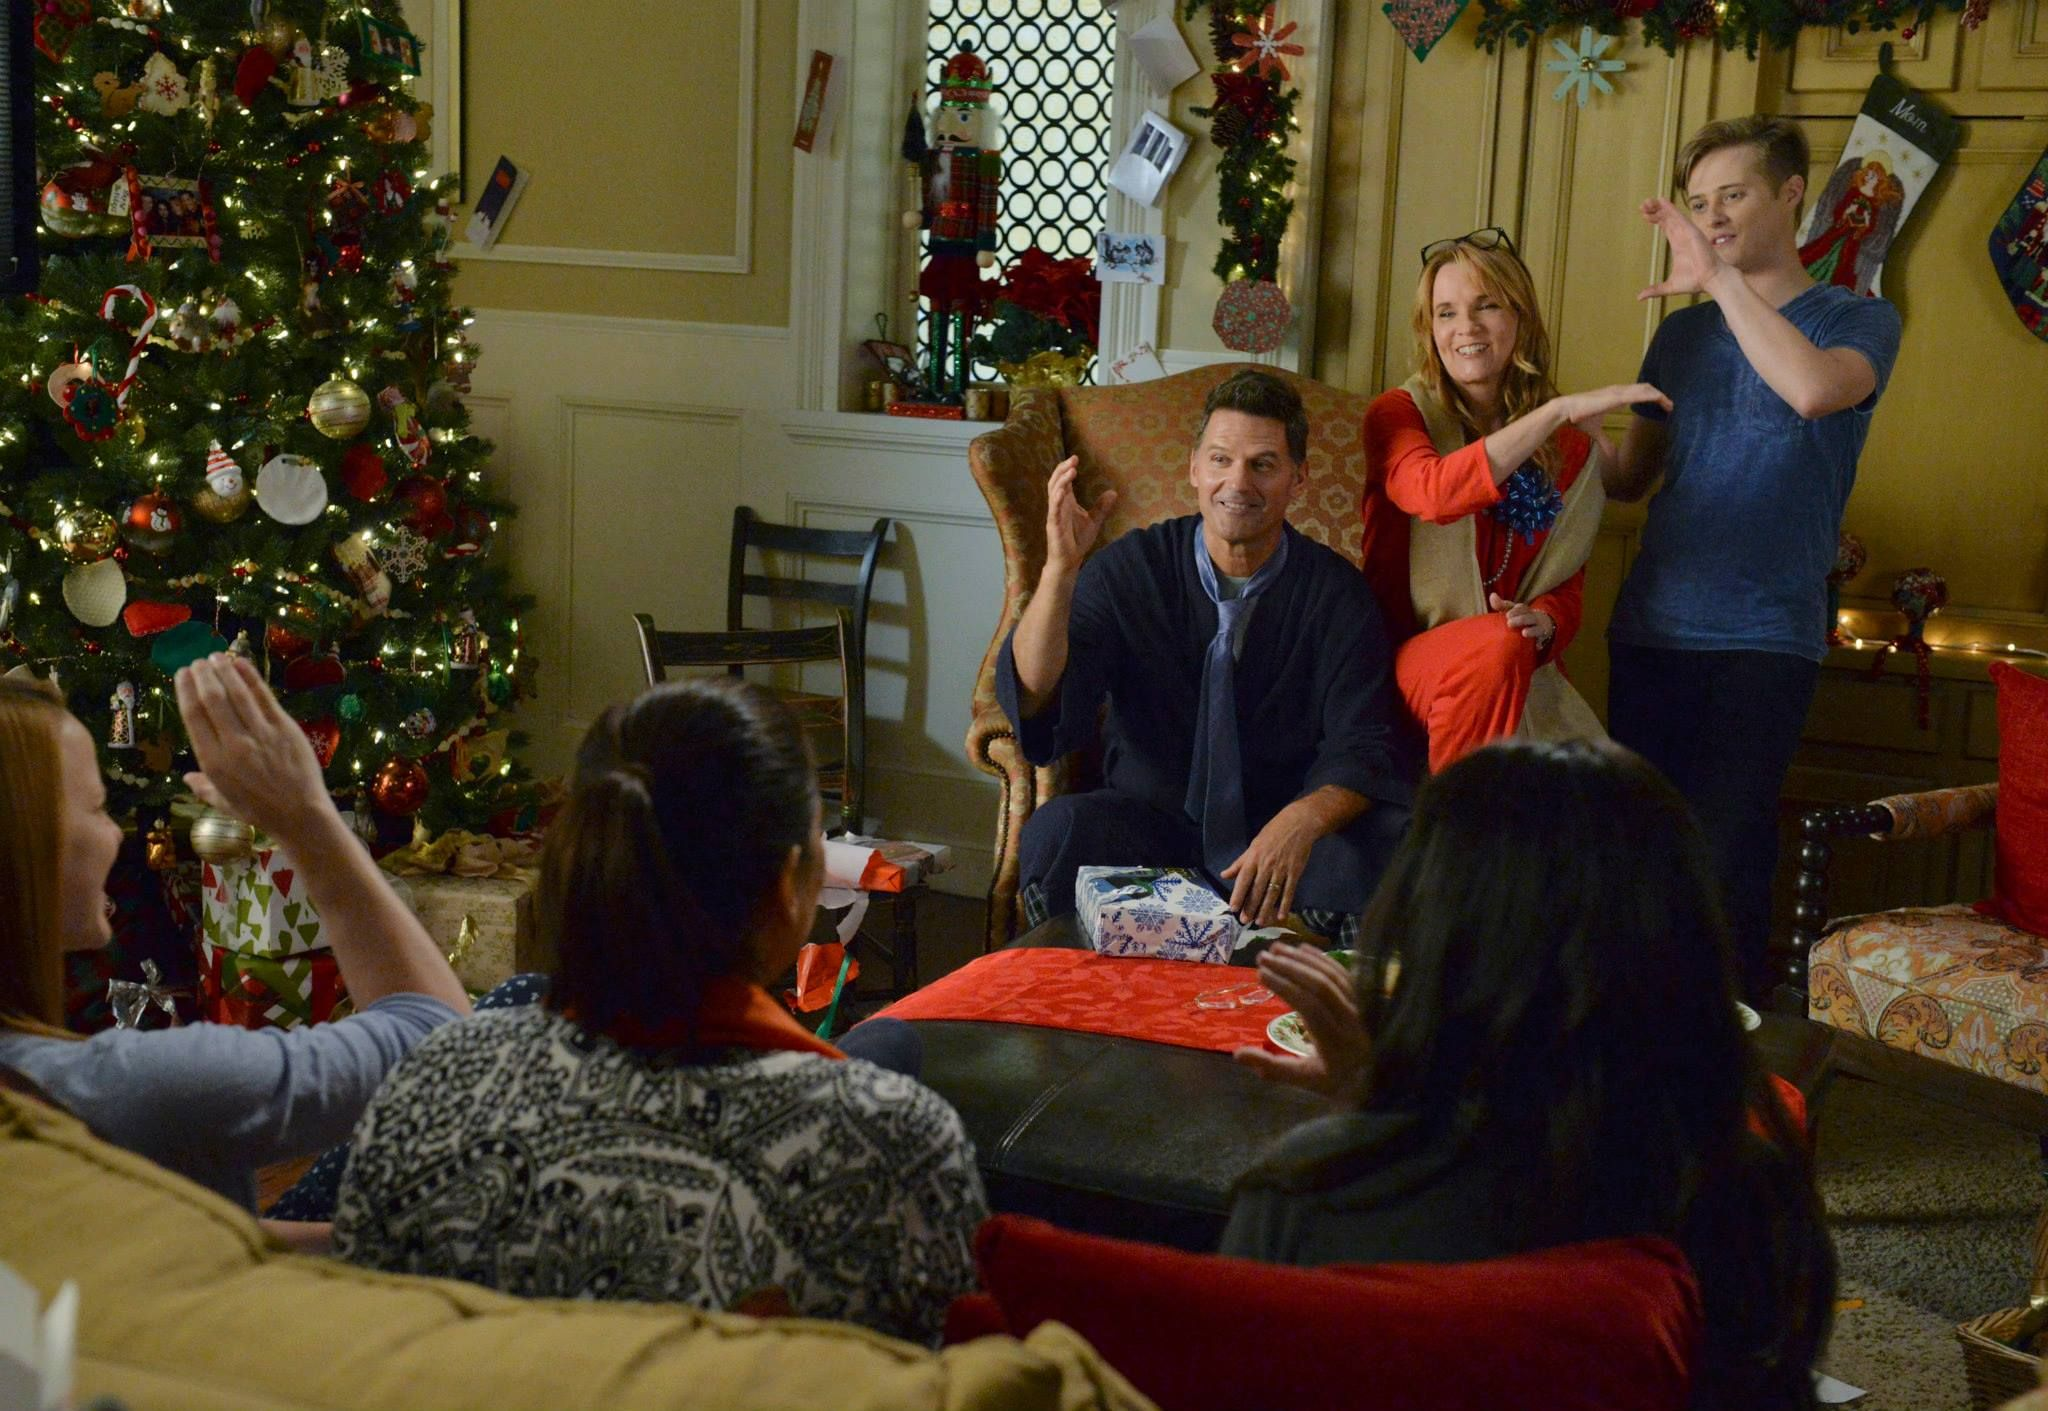 Don't miss the Switched at Birth Christmas Special on Monday, December 8 at 9/8c on ABC Family